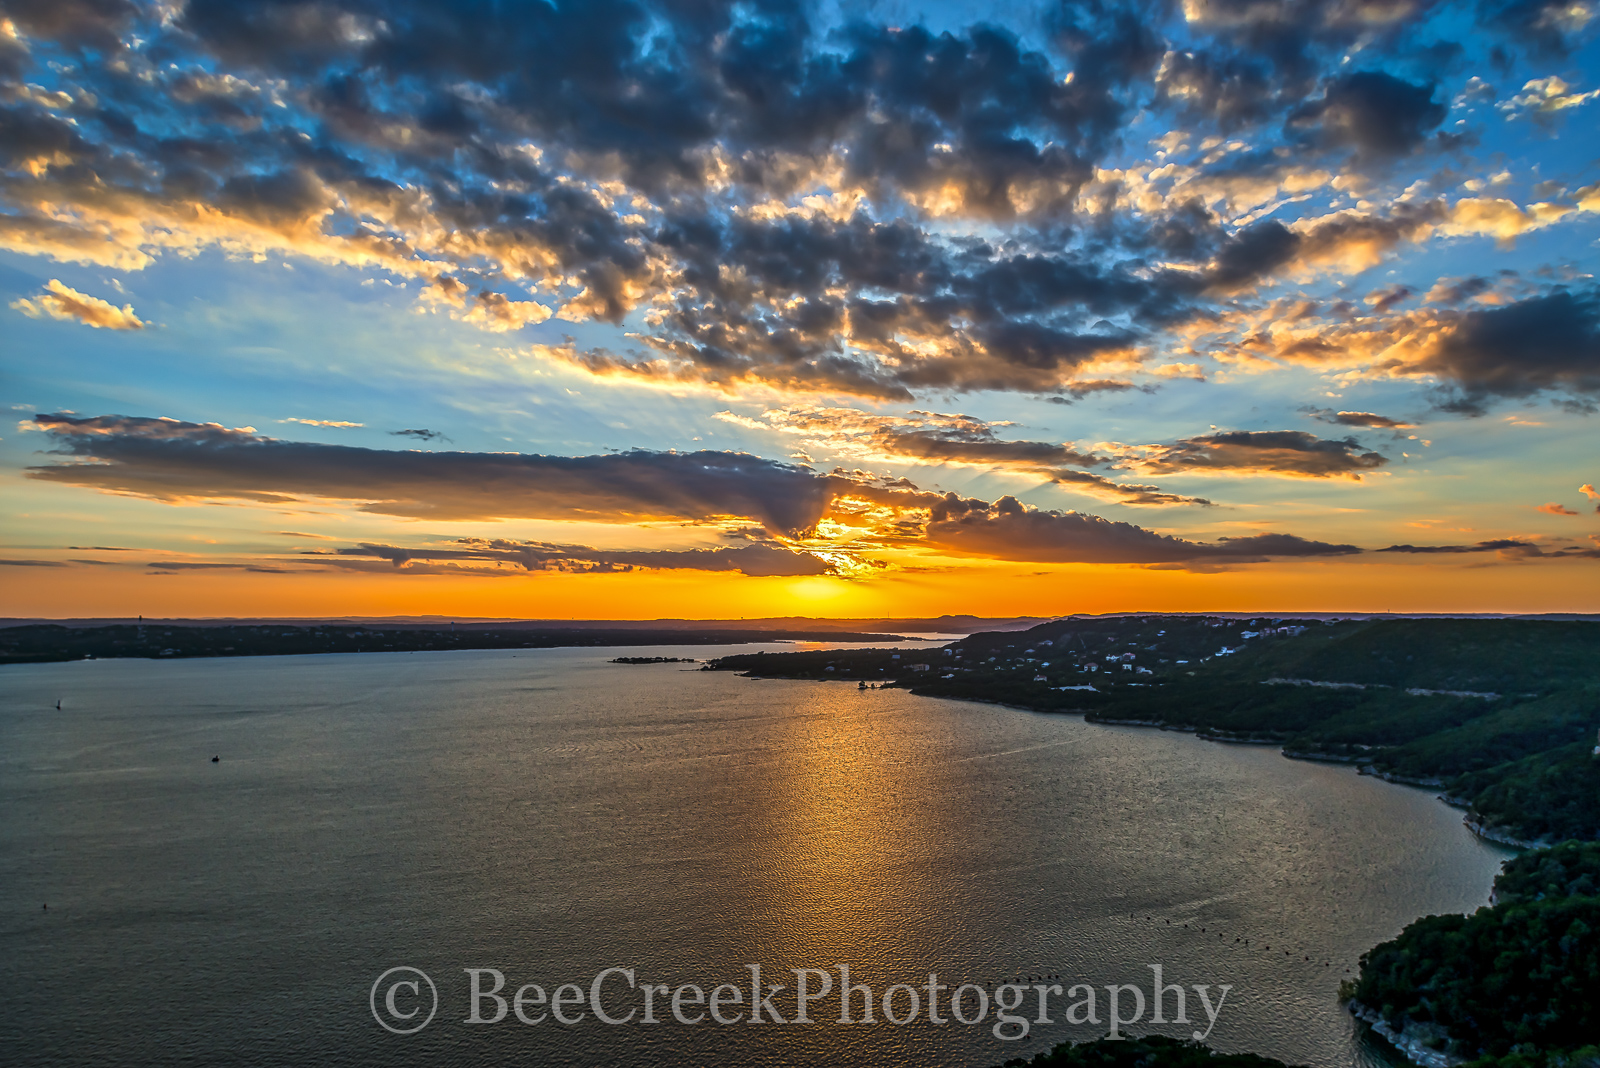 Austin, Lake Travis, sunset, colorful, clouds, images of Texas, lake, landscapes, orange, photos of Texas, rural, texas hill country, texas landscape, texas, America, American, recreational, boating, , photo